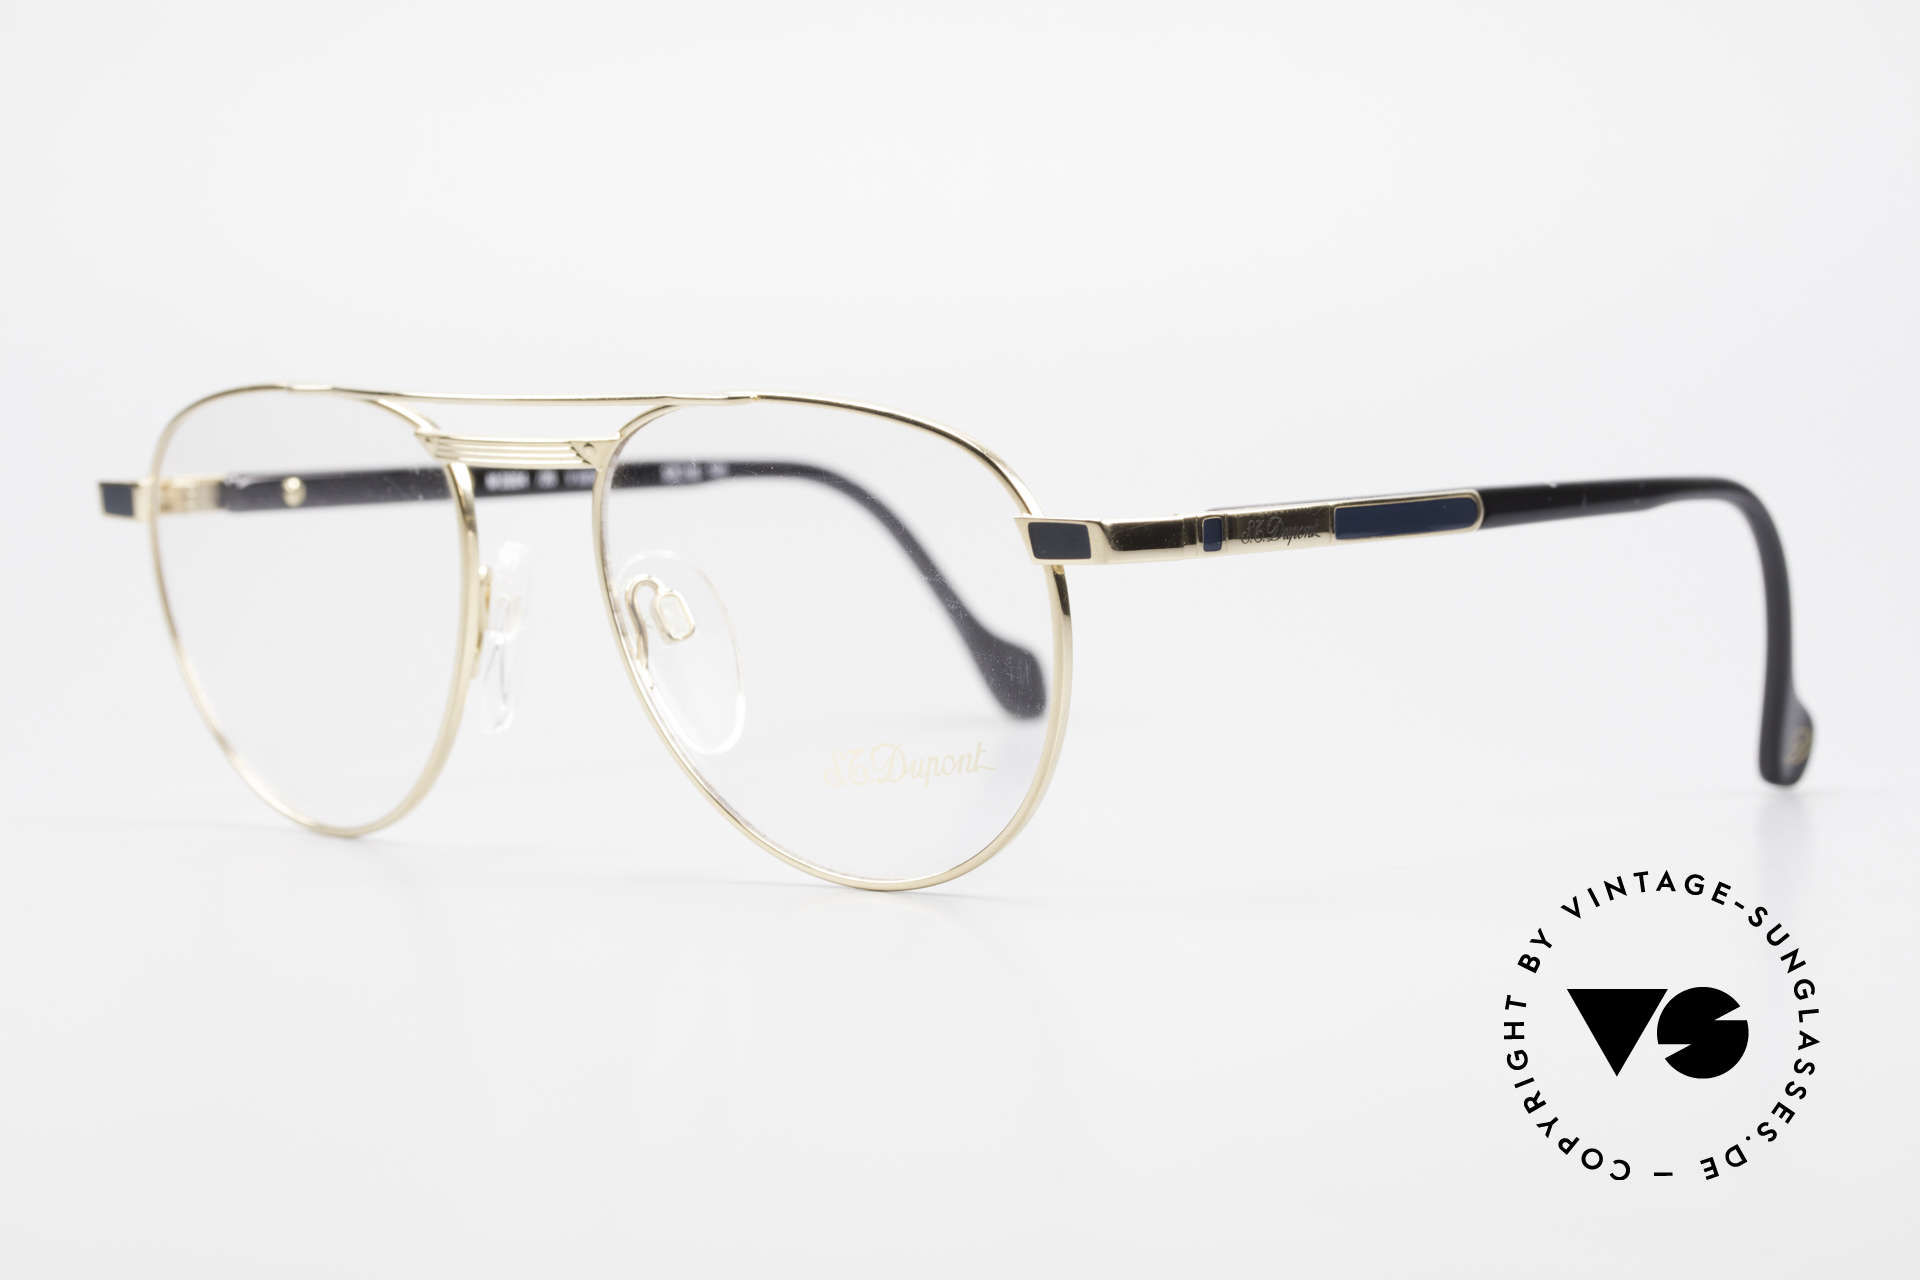 S.T. Dupont D004 Men's Luxury Aviator Glasses, very noble & 1st class wearing comfort, U must feel it!, Made for Men